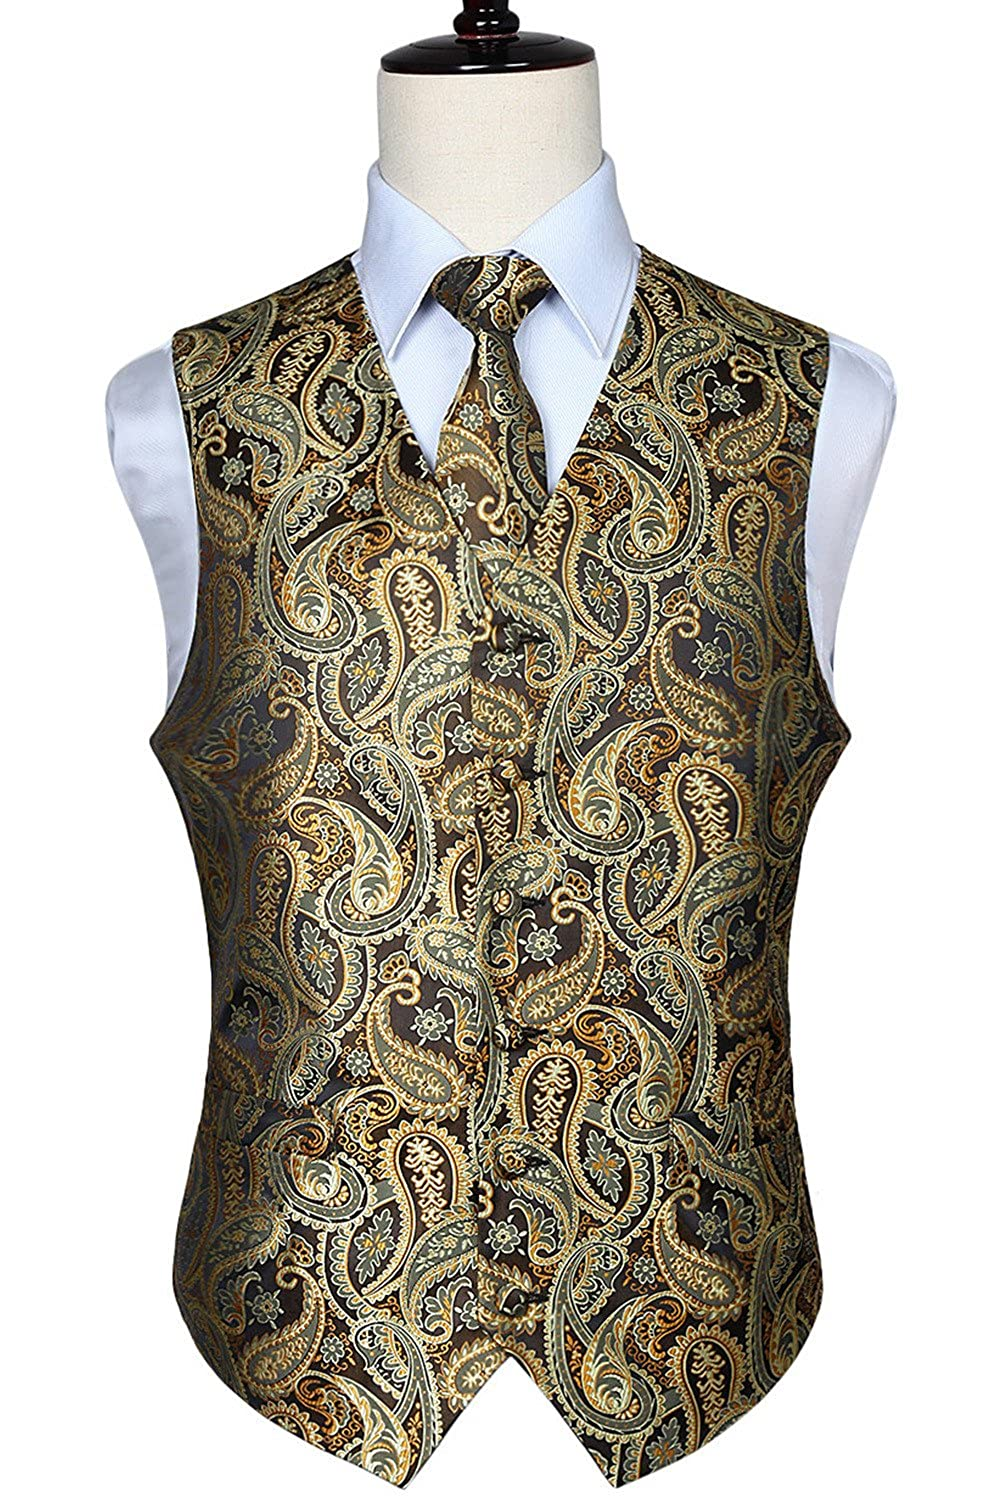 HISDERN Mens Classic Paisley Floral Jacquard Waistcoat & Necktie and Pocket Square